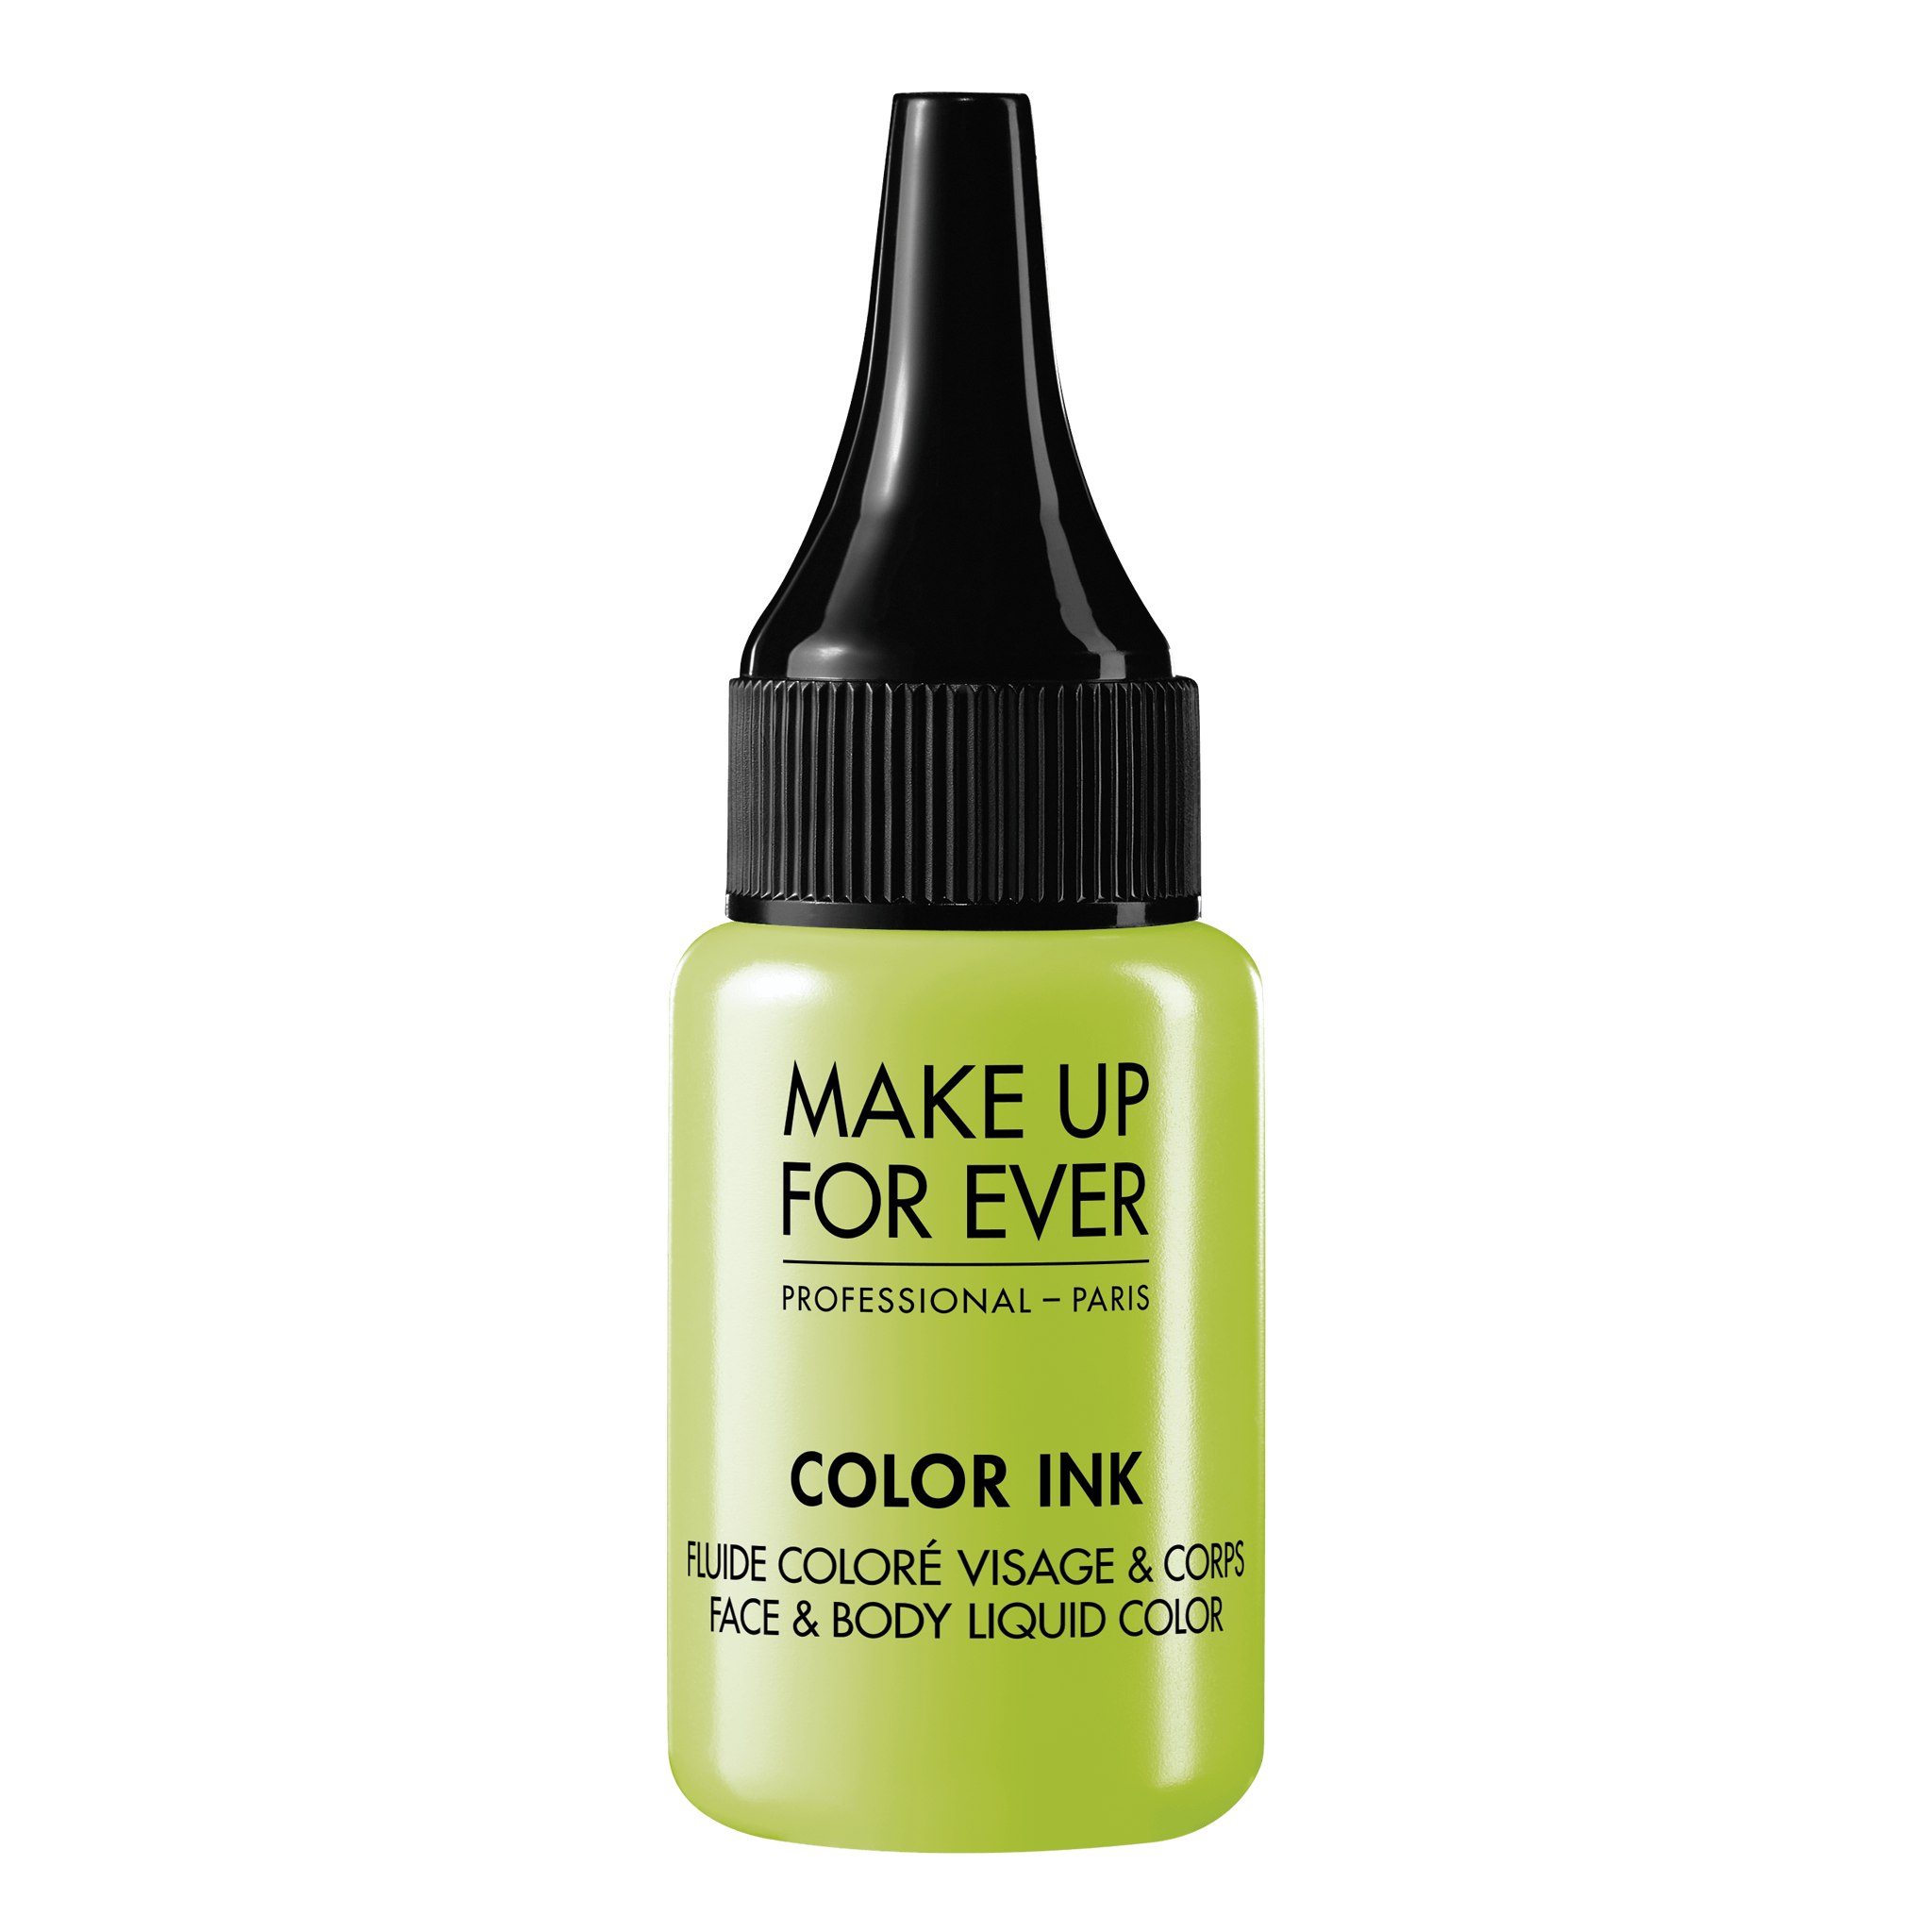 Color Ink is a highly pigmented and precise liquid color